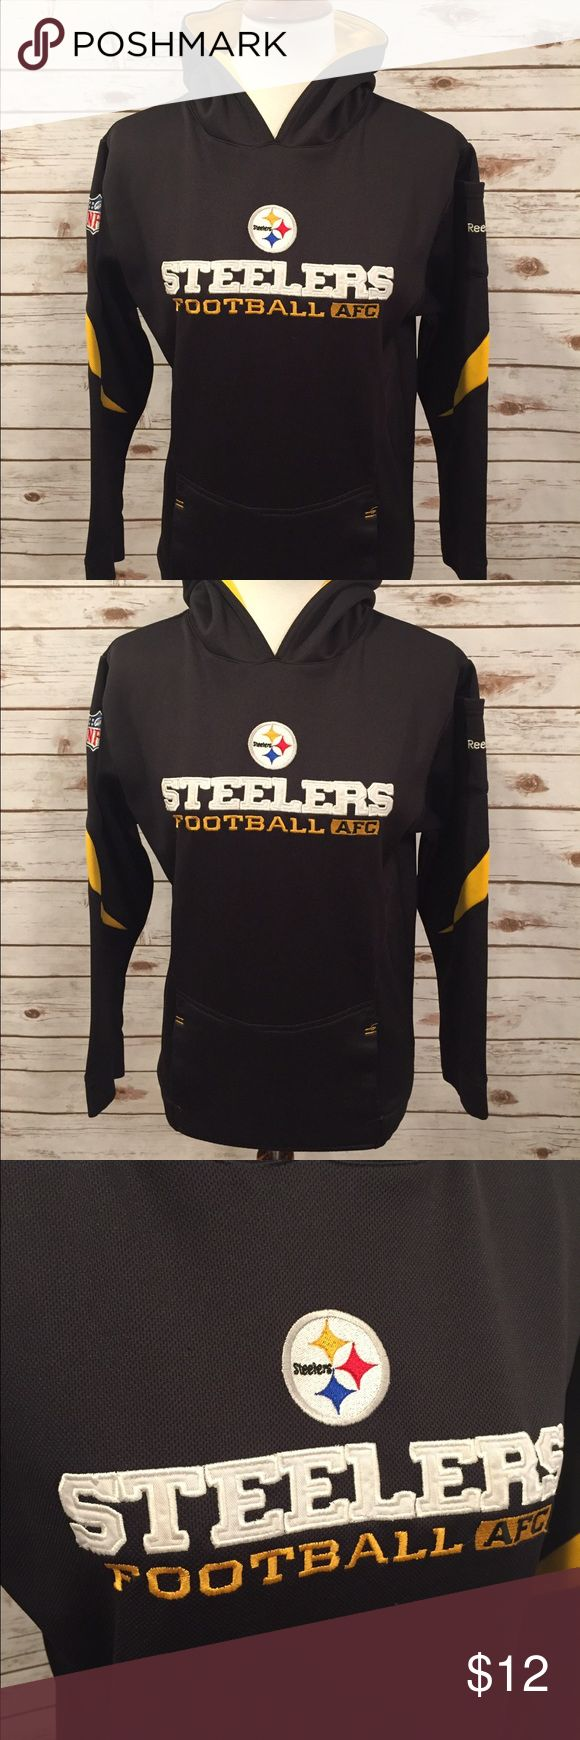 Reebok Steelers Hoodie Very well made hoodie!  This is not your regular Sweatshirt material. In good condition besides some pilling on the back bottom where you would lean up against something. It's not too bad though but is present. Reebok Steelers Shirts & Tops Sweatshirts & Hoodies